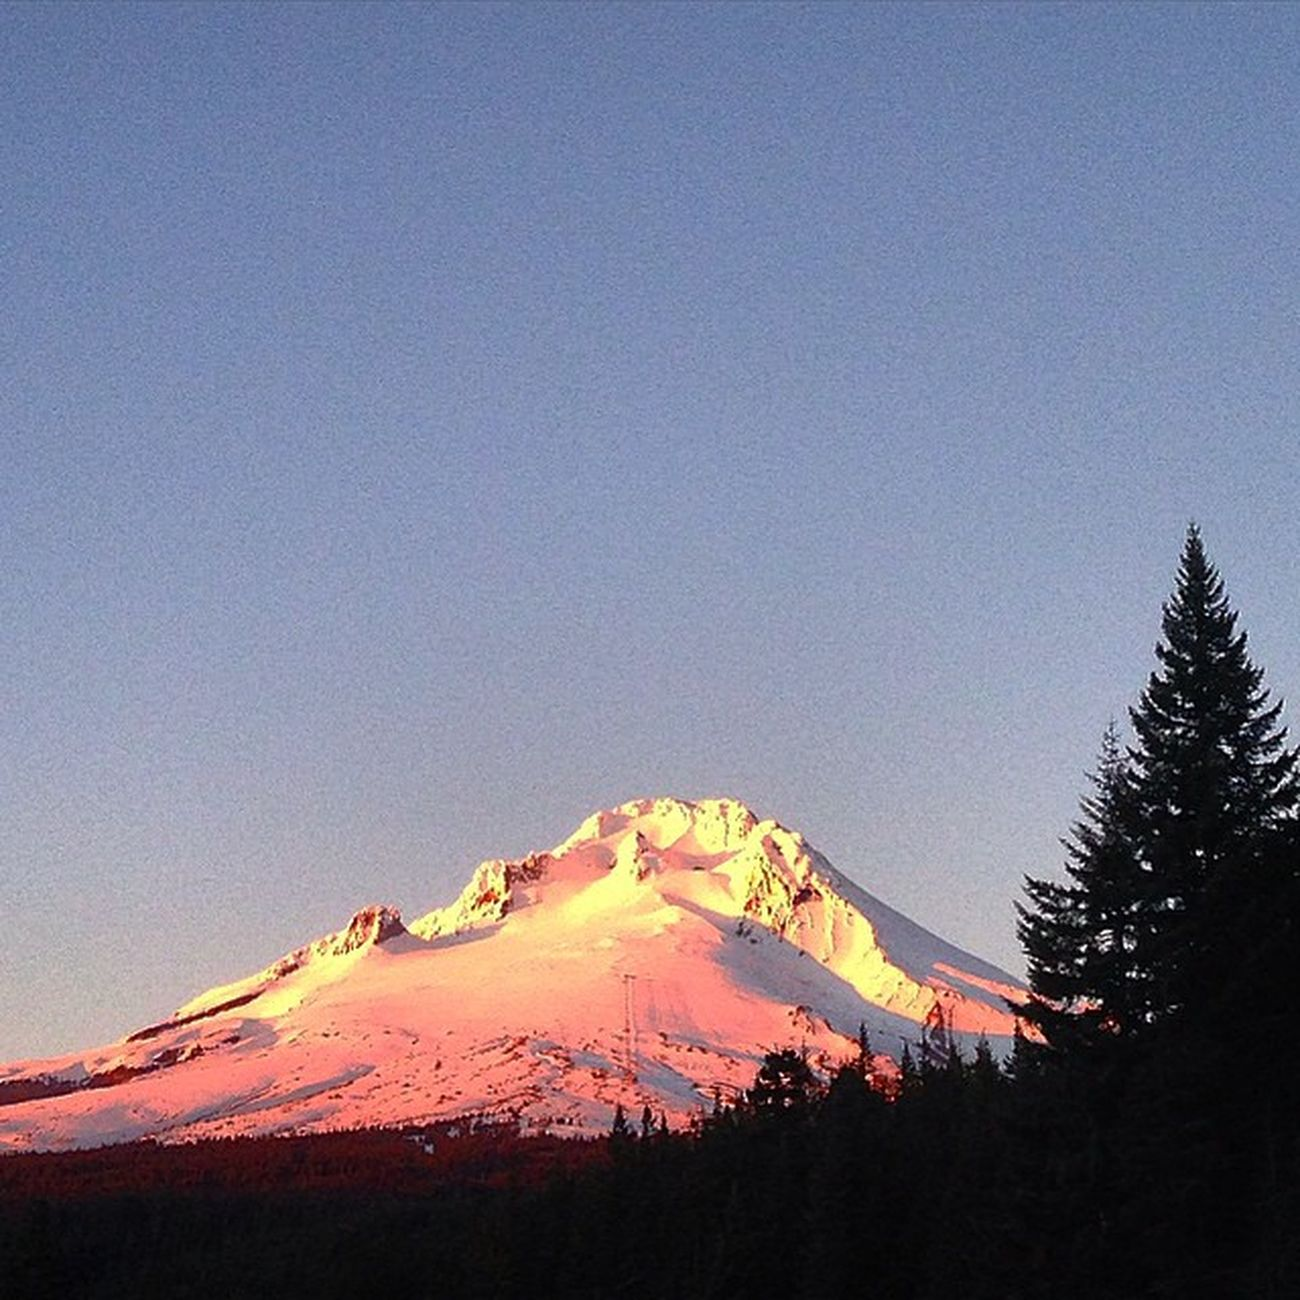 Mt. Hood MtHood Hoodriver HOODLIFE Mountain Sunset Roadporn Earthporn Roadtrip Livelife Lovelife Lovemyjob Youroregon